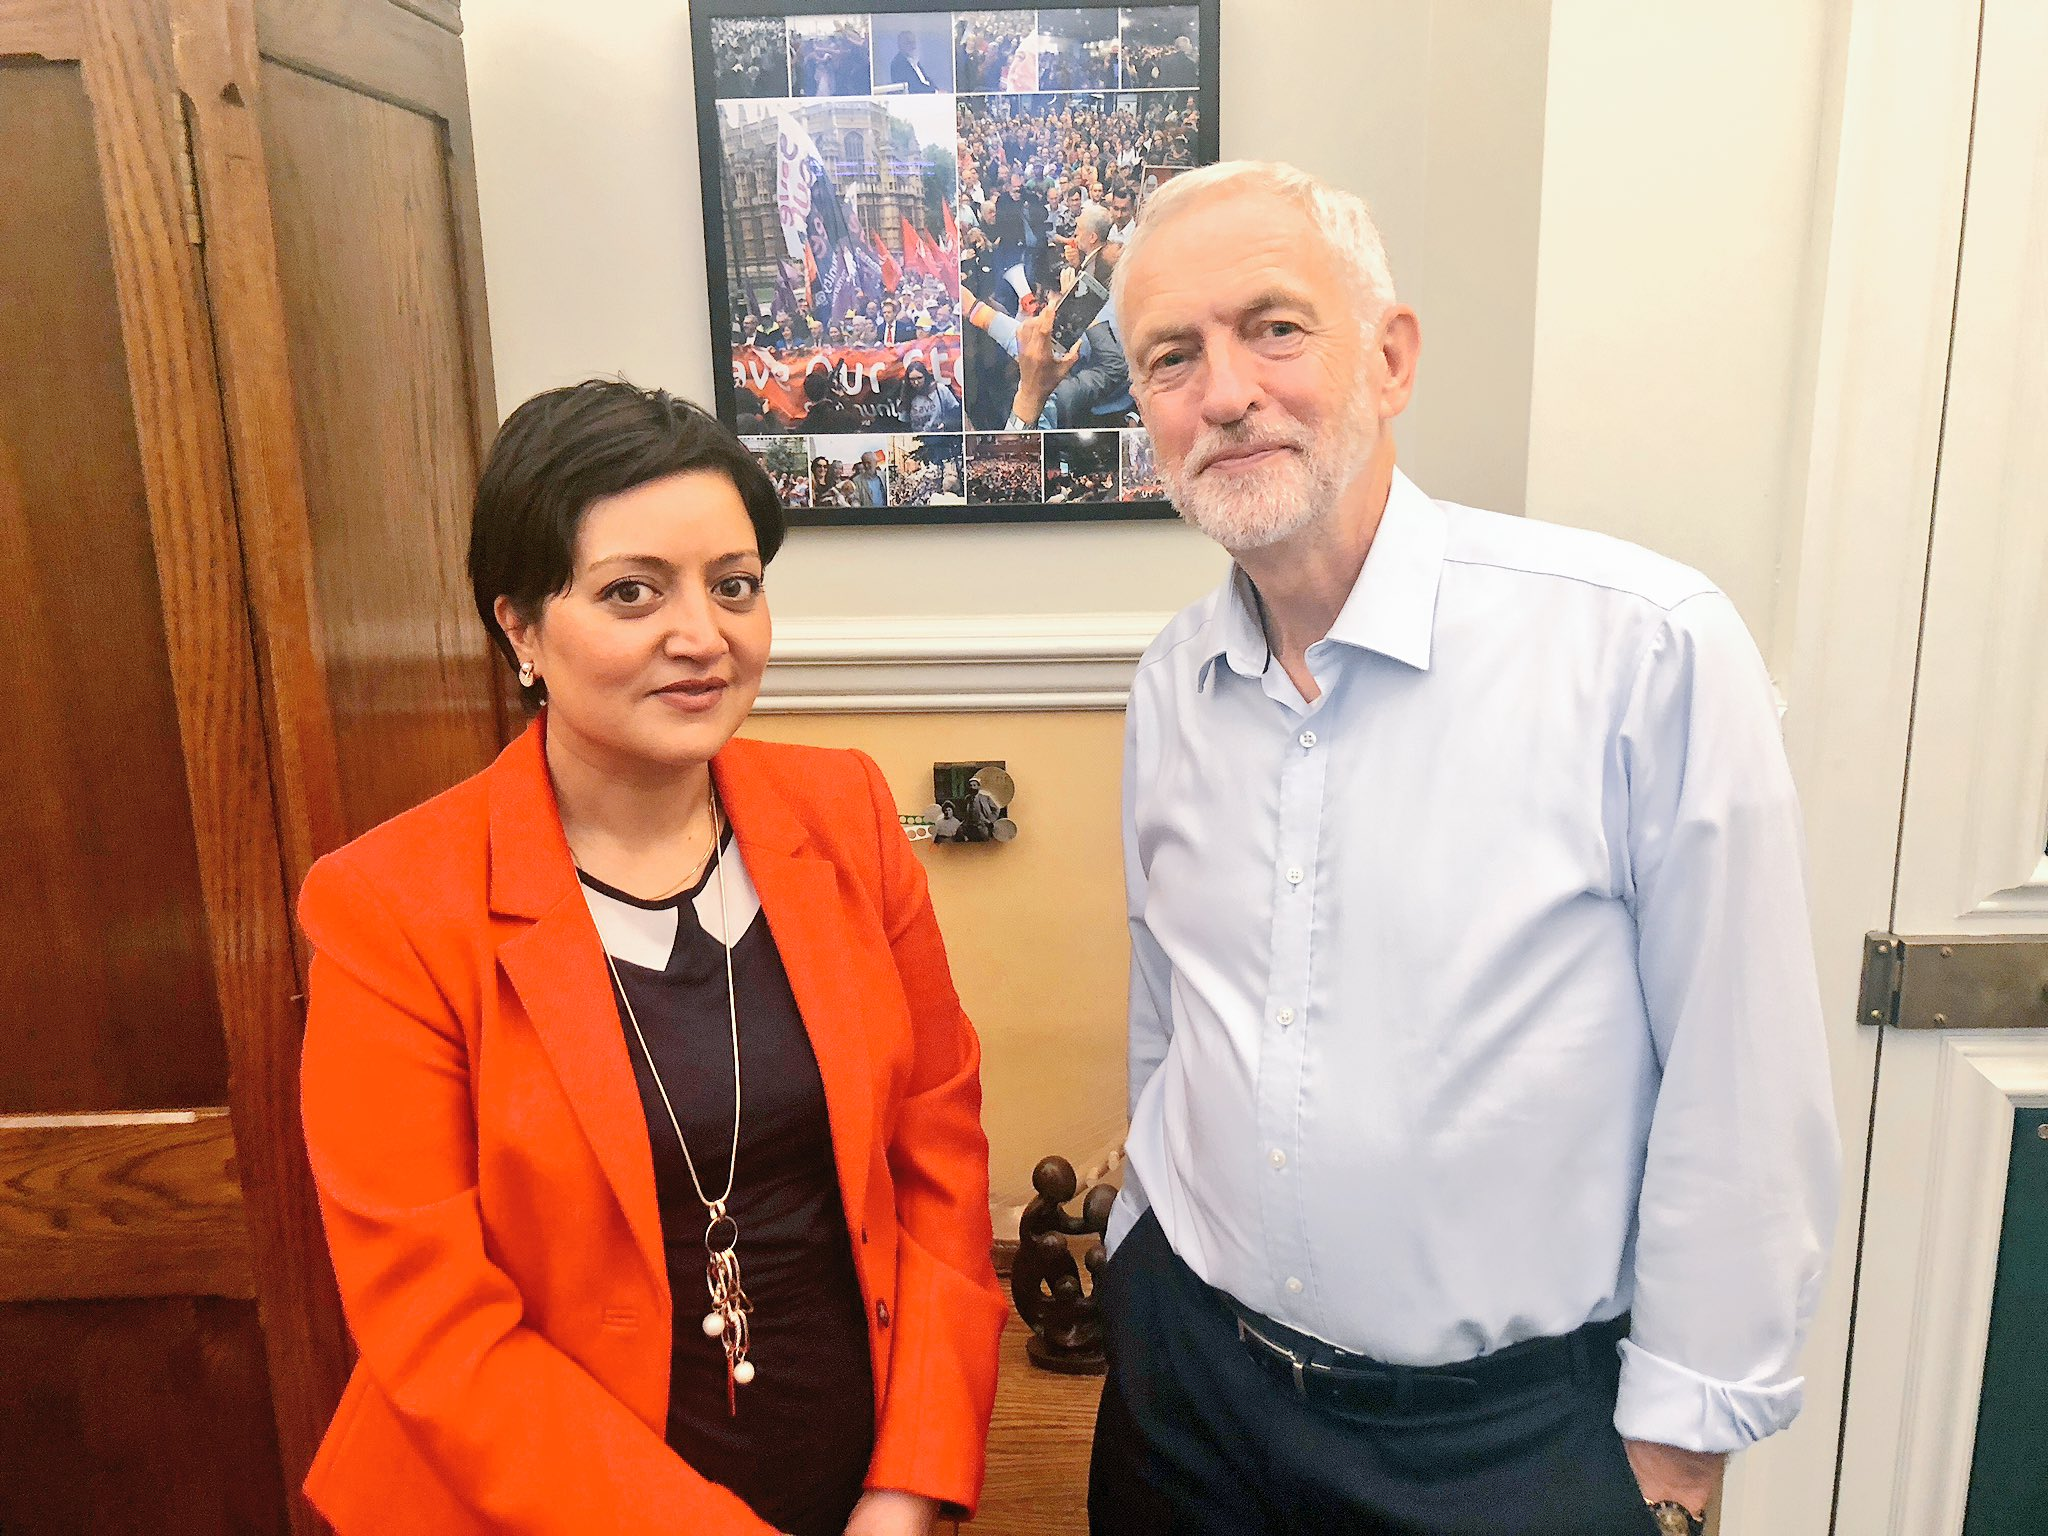 Current mayor Rokhsana Fiaz with former Labour leader Jeremy Corbyn